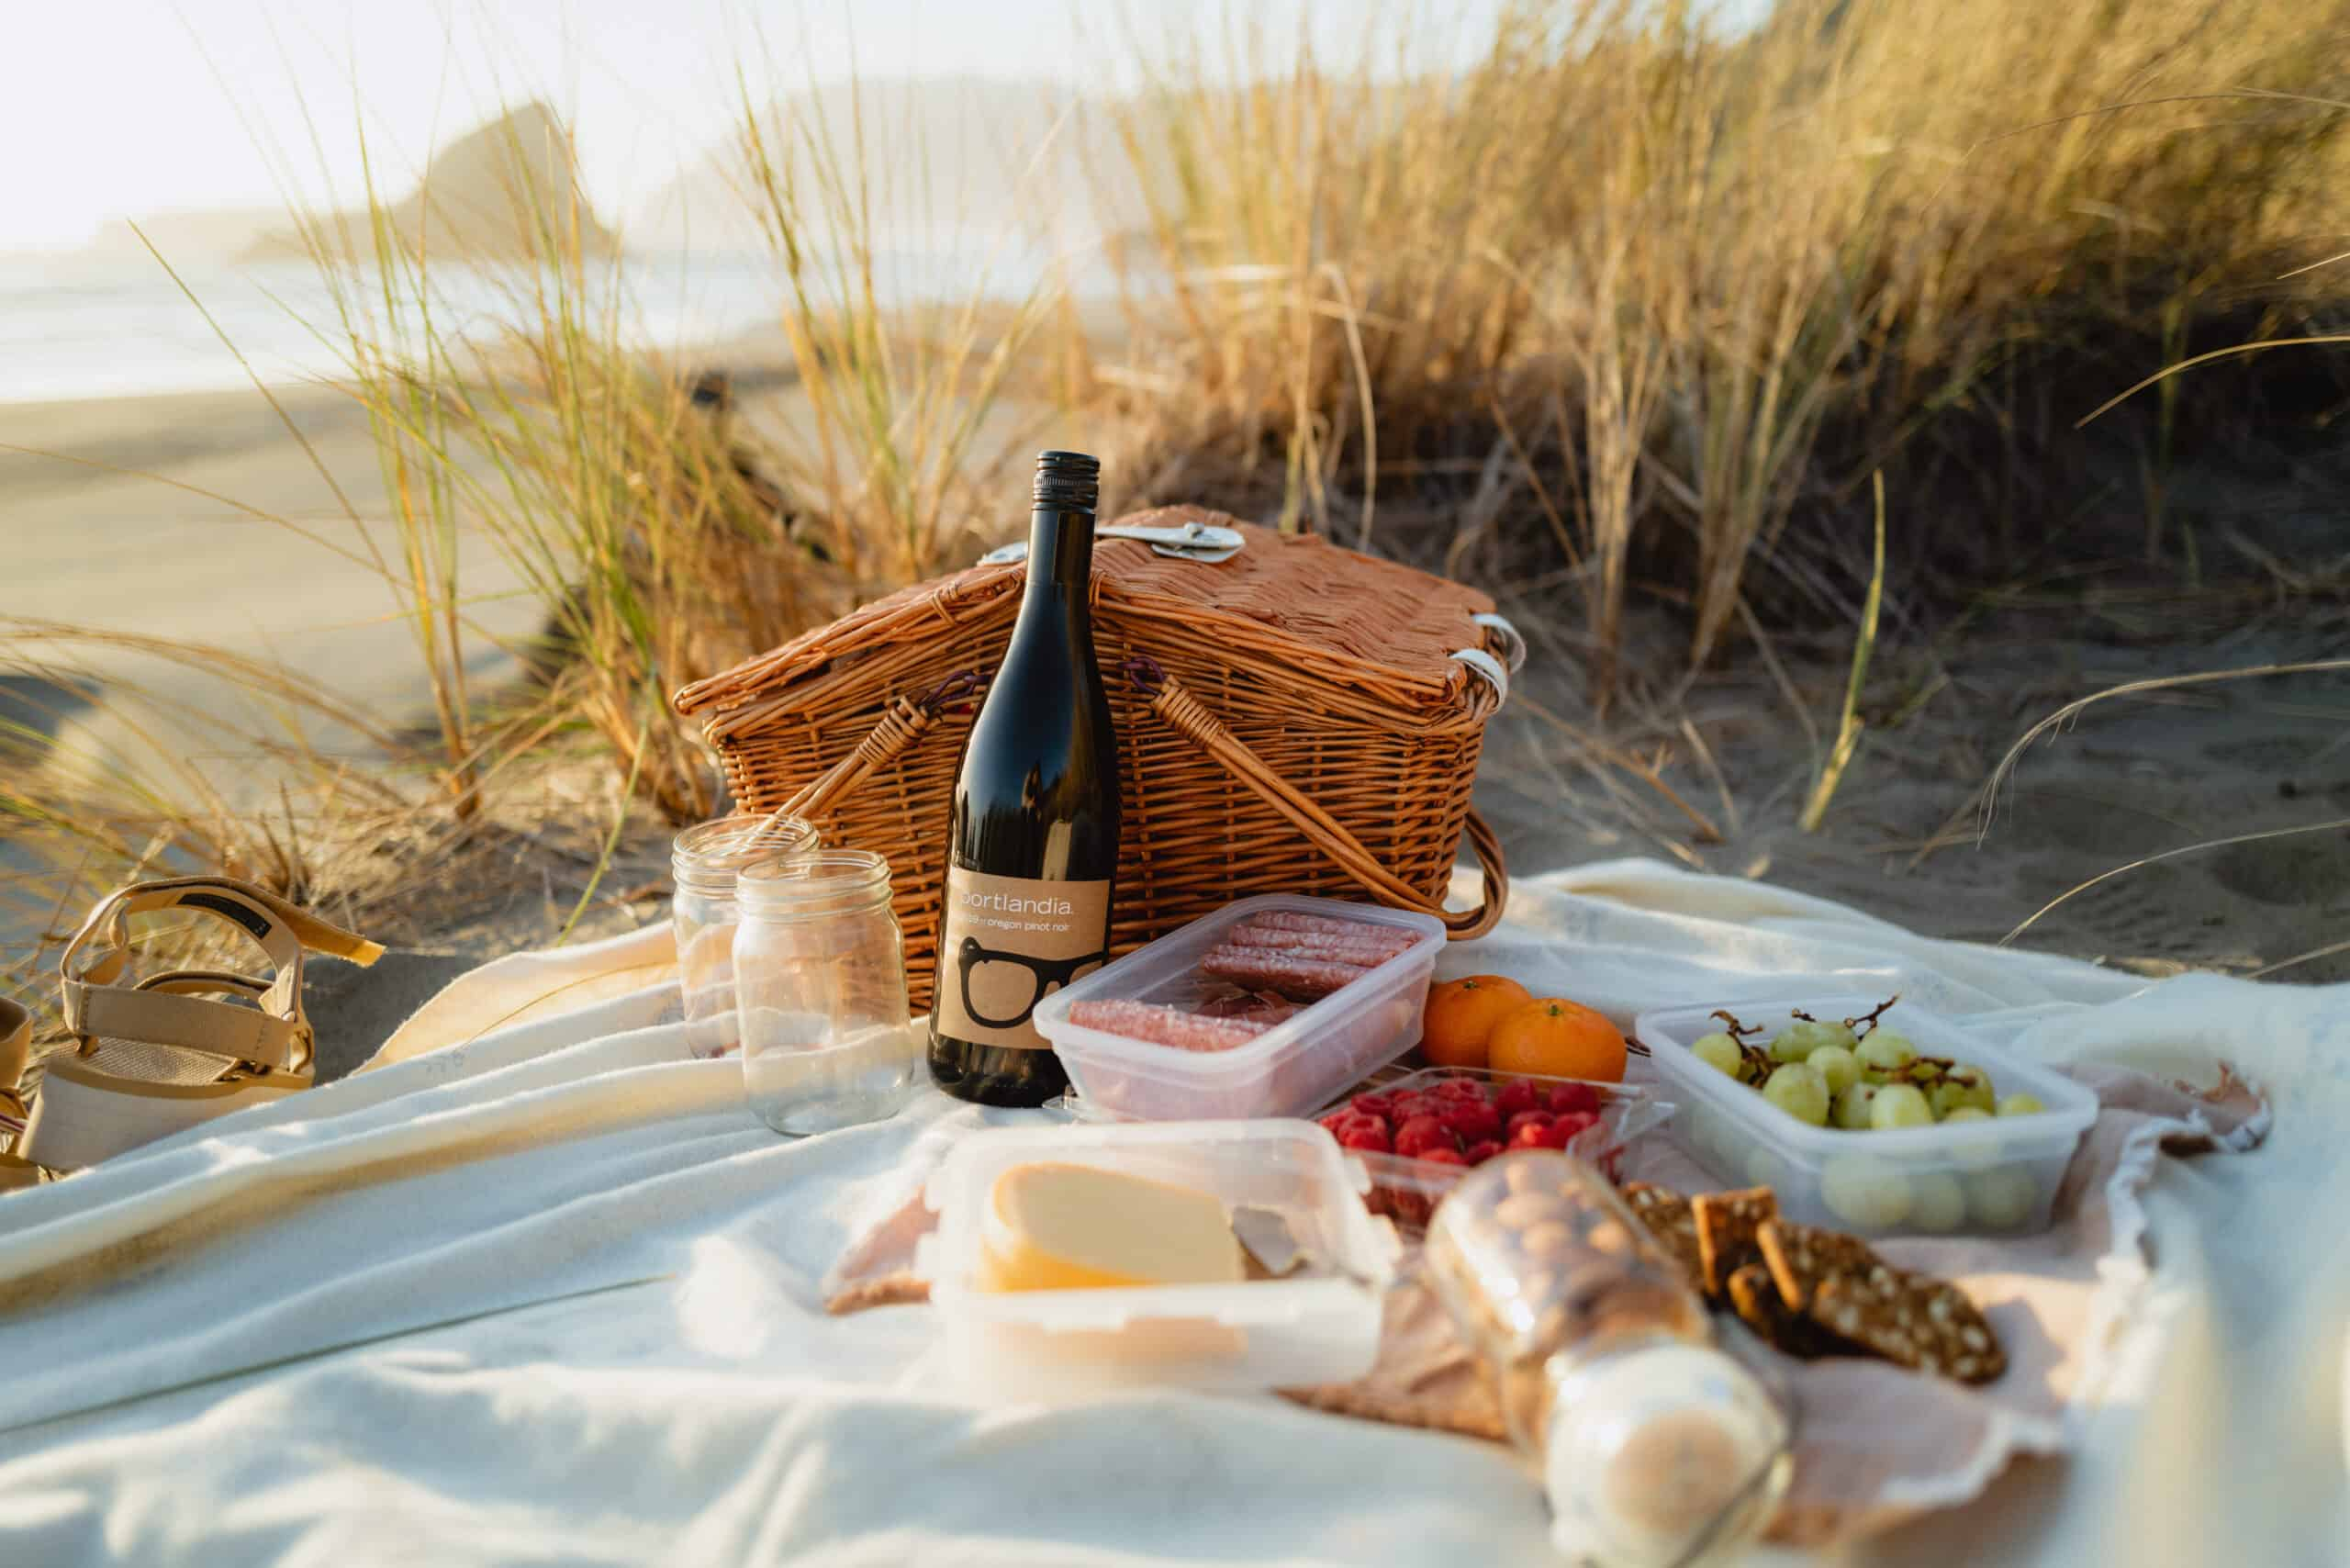 The 10 Best Oregon Coast Picnic Spots For A Rugged And Beautiful PNW Outing